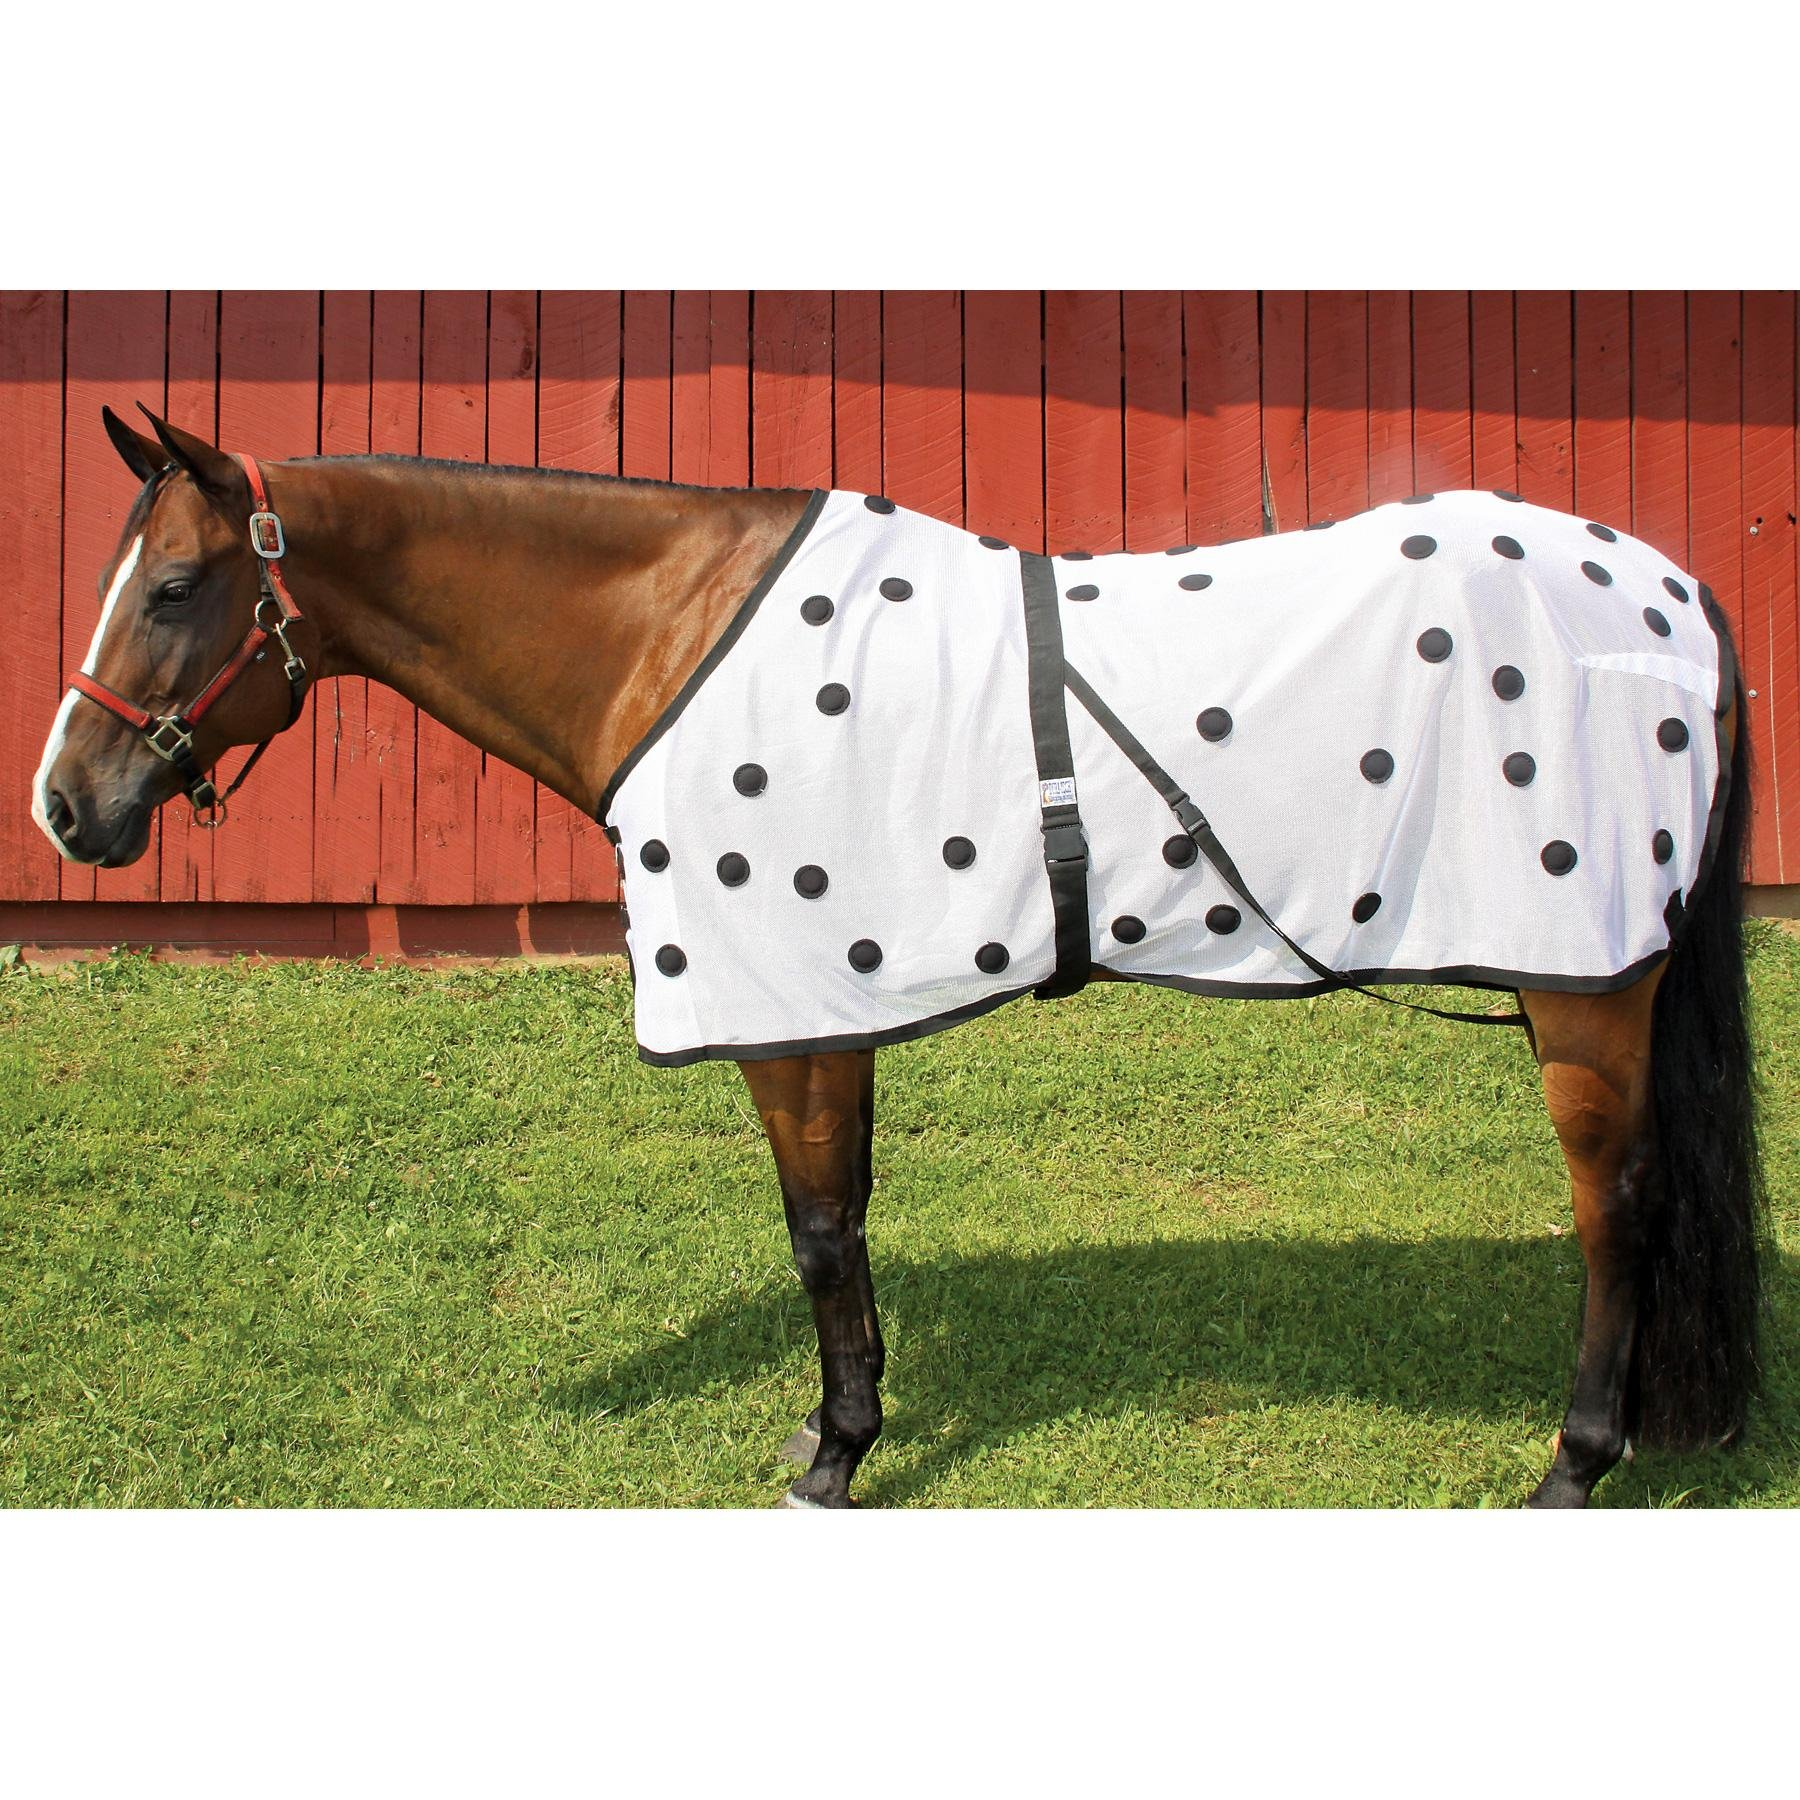 Dura-Tech Therapeutic Magnetic Mesh Sheet for Horses, Magnetic Therapy Blanket for Accelerated Healing, Injury Prevention, and Increased Blood Flow - Available in Even Sizes 76-82 (Size 76)